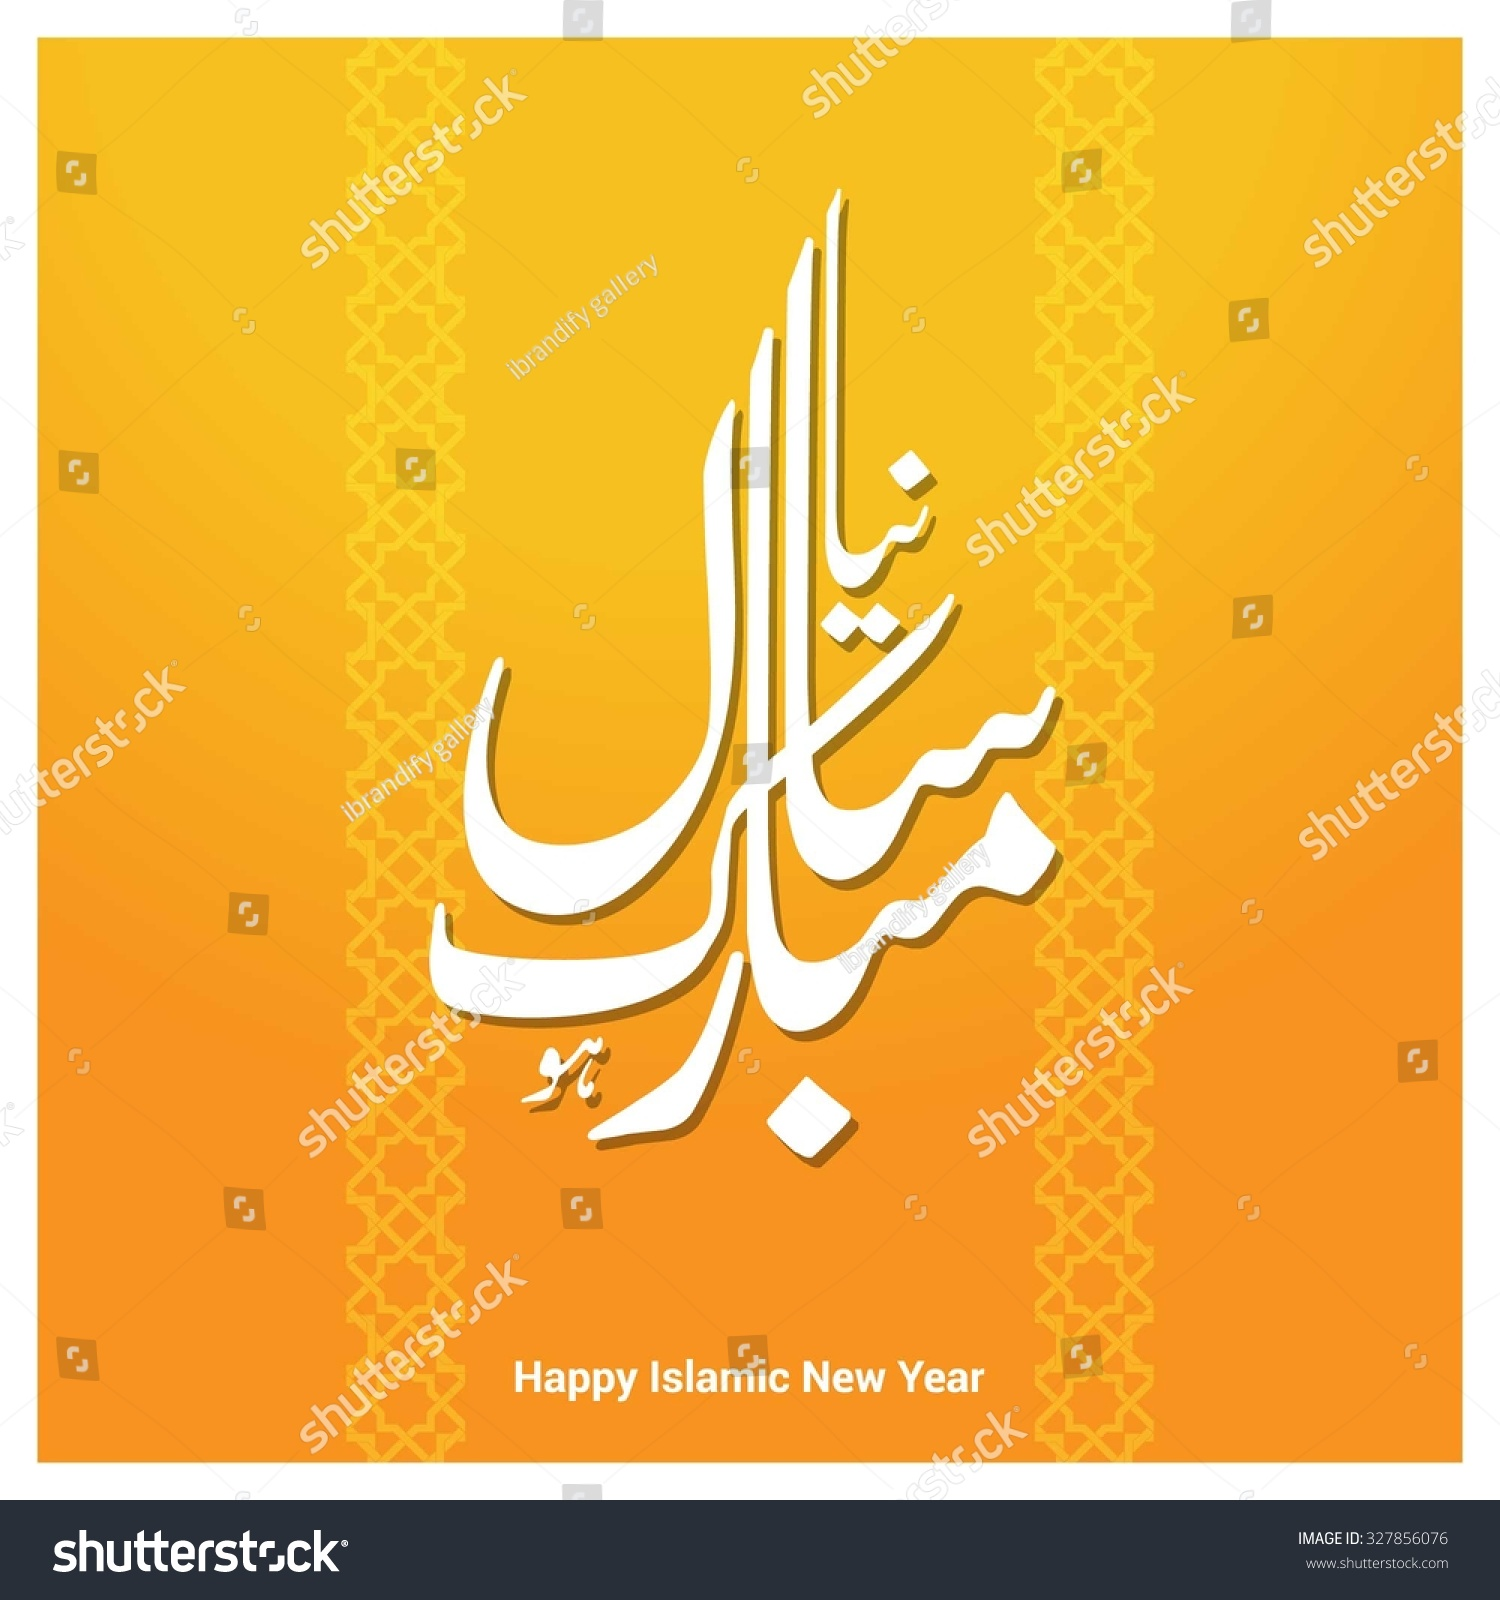 urdu calligraphy of naya saal mubarak ho urdu calligraphy happy new year on abstract background